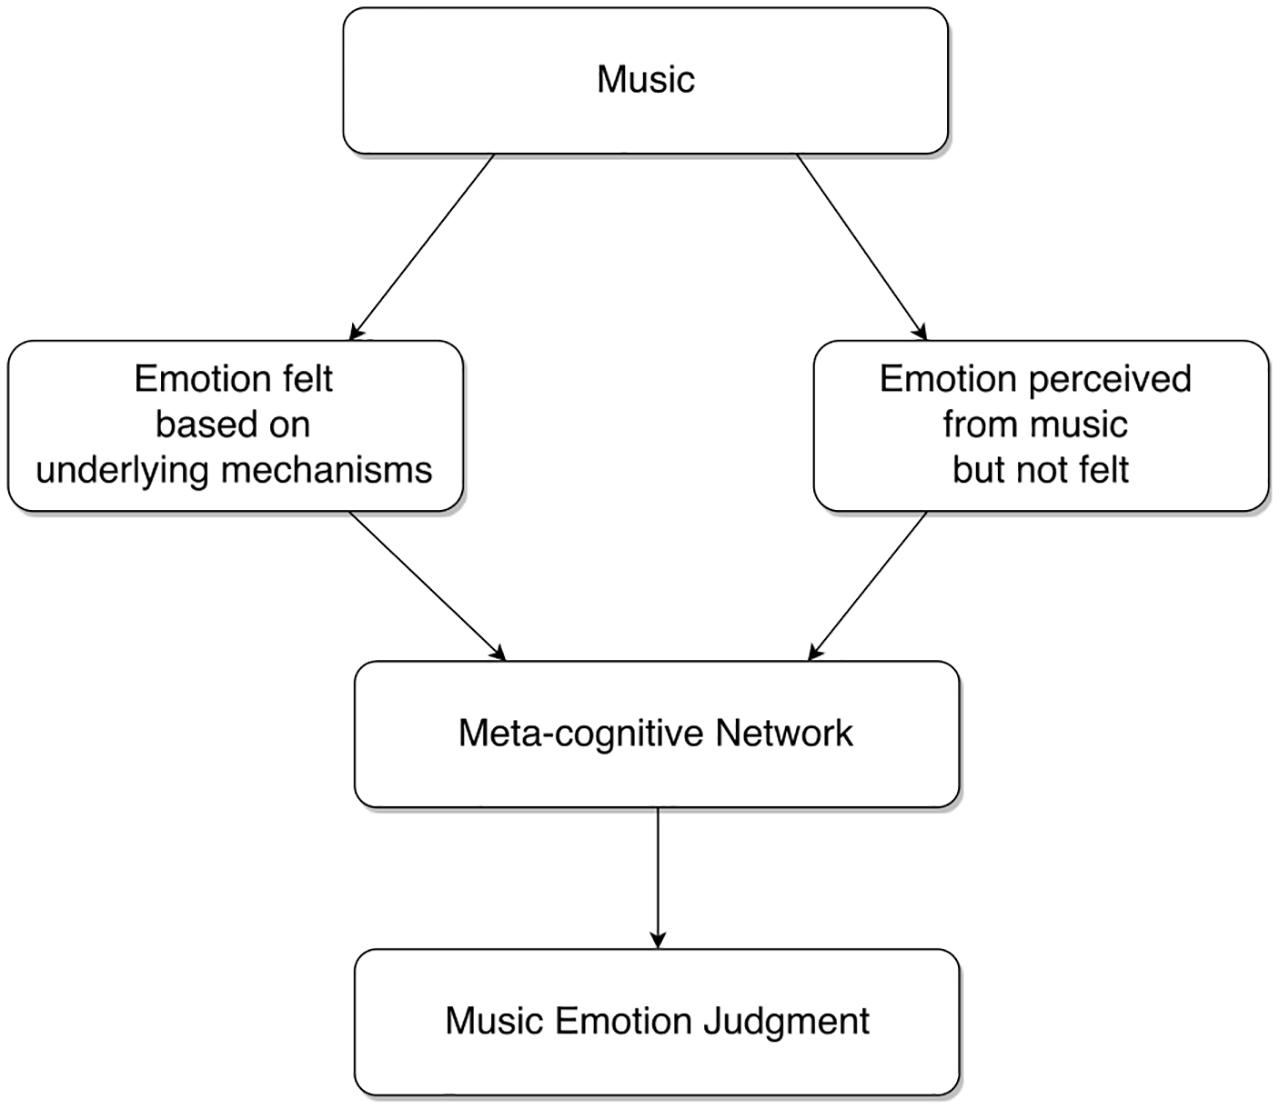 Frontiers | Modeling Music Emotion Judgments Using Machine